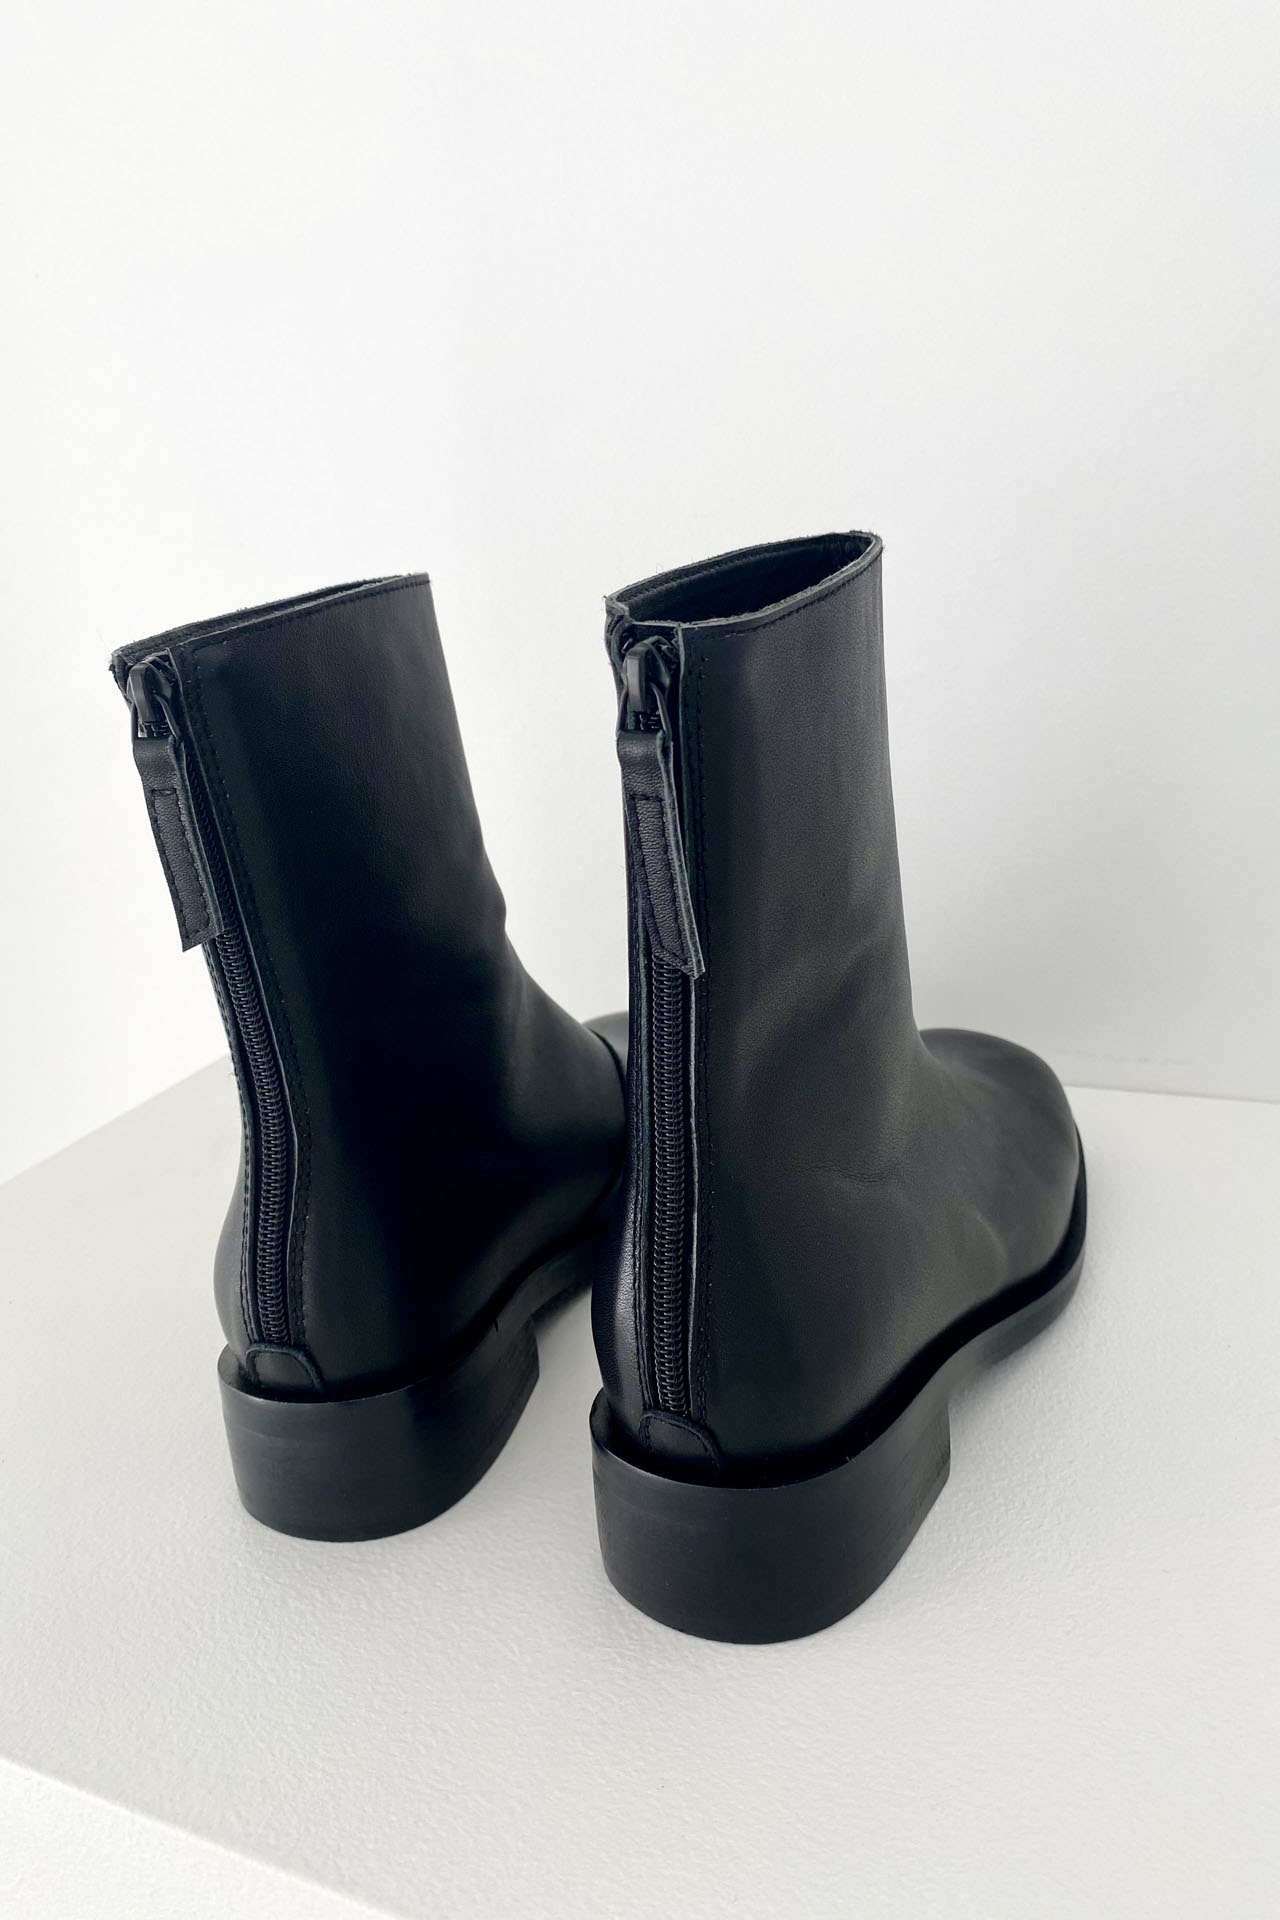 SQUARE SOFT LEATHER MIDDLE BOOTS BLACK